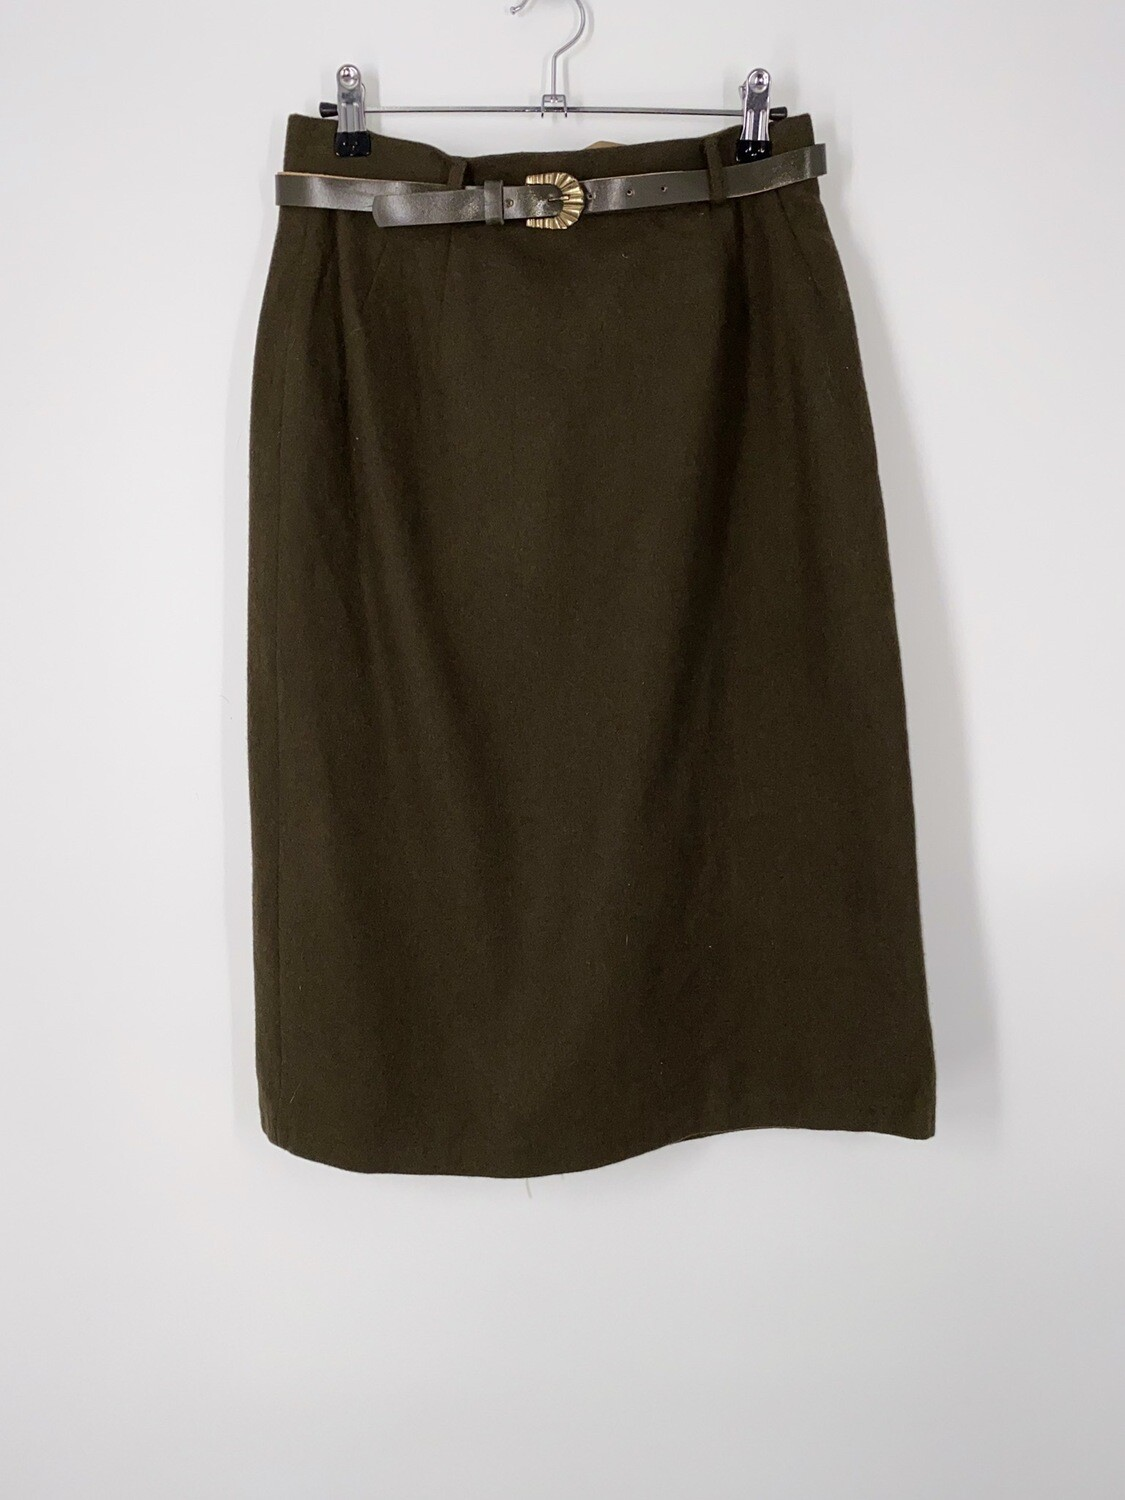 Brown Belted Skirt Size M